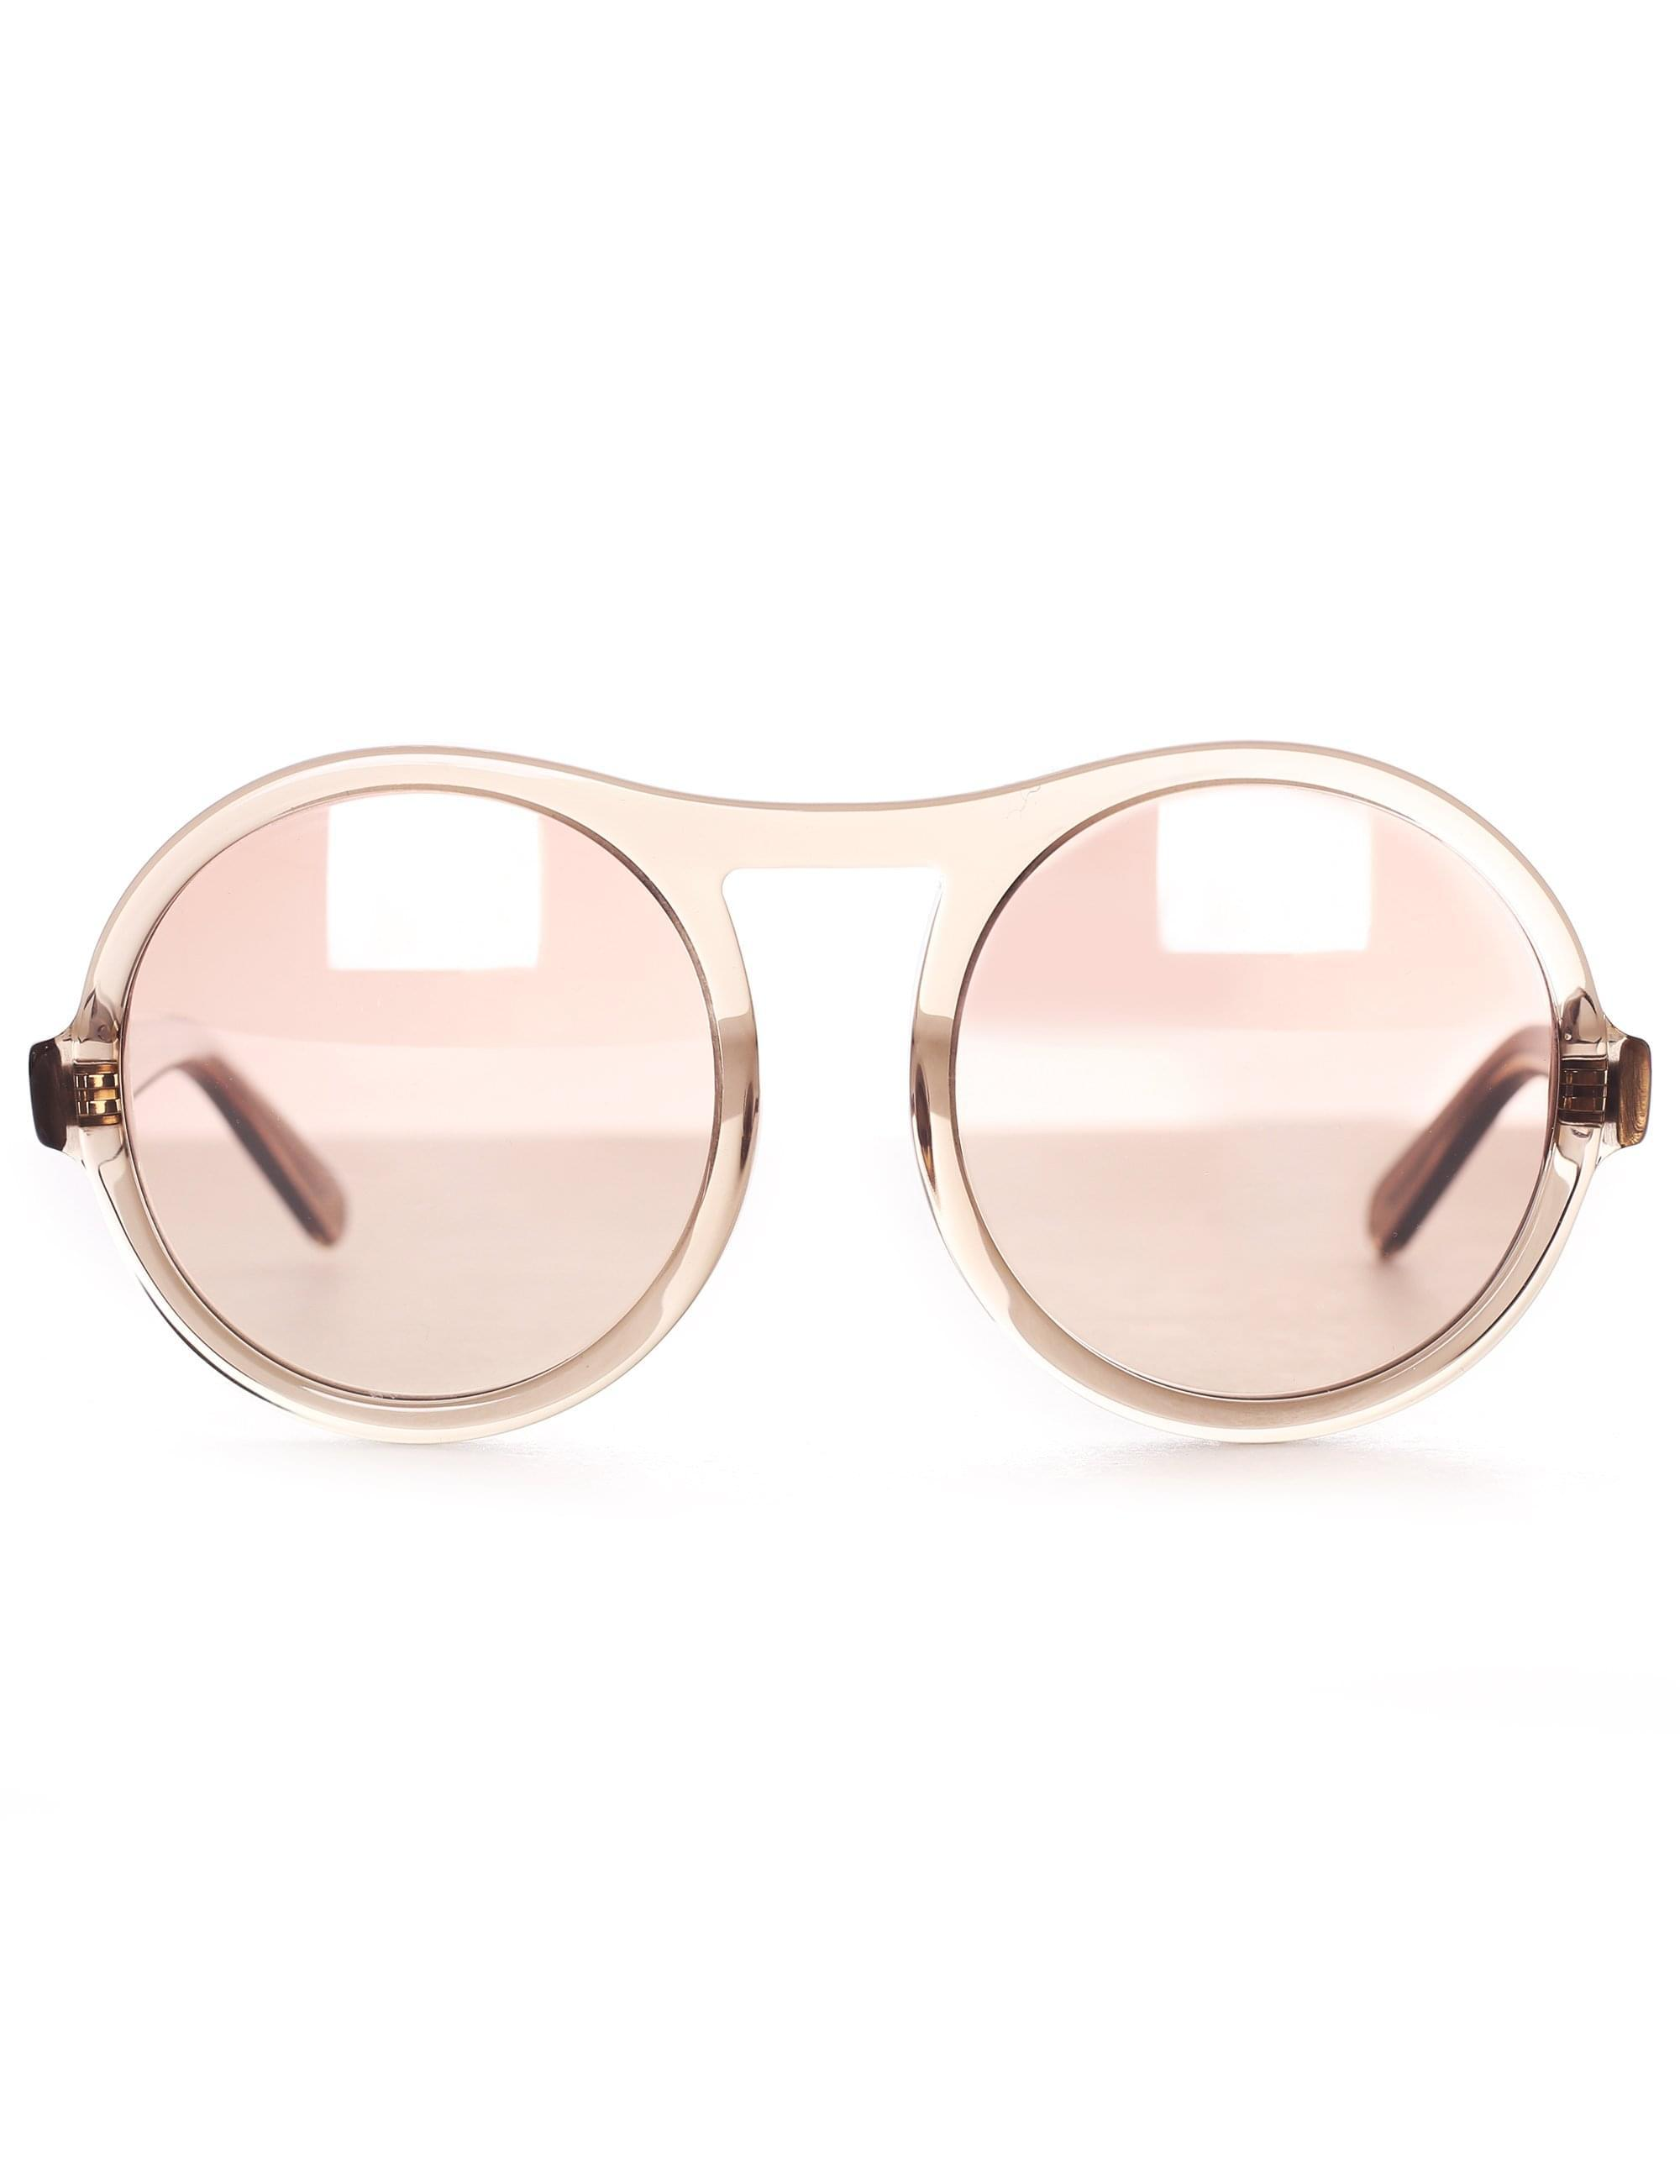 4c0a294a16 Chloé Women s Marlow Sunglasses Turtledove in Pink - Lyst